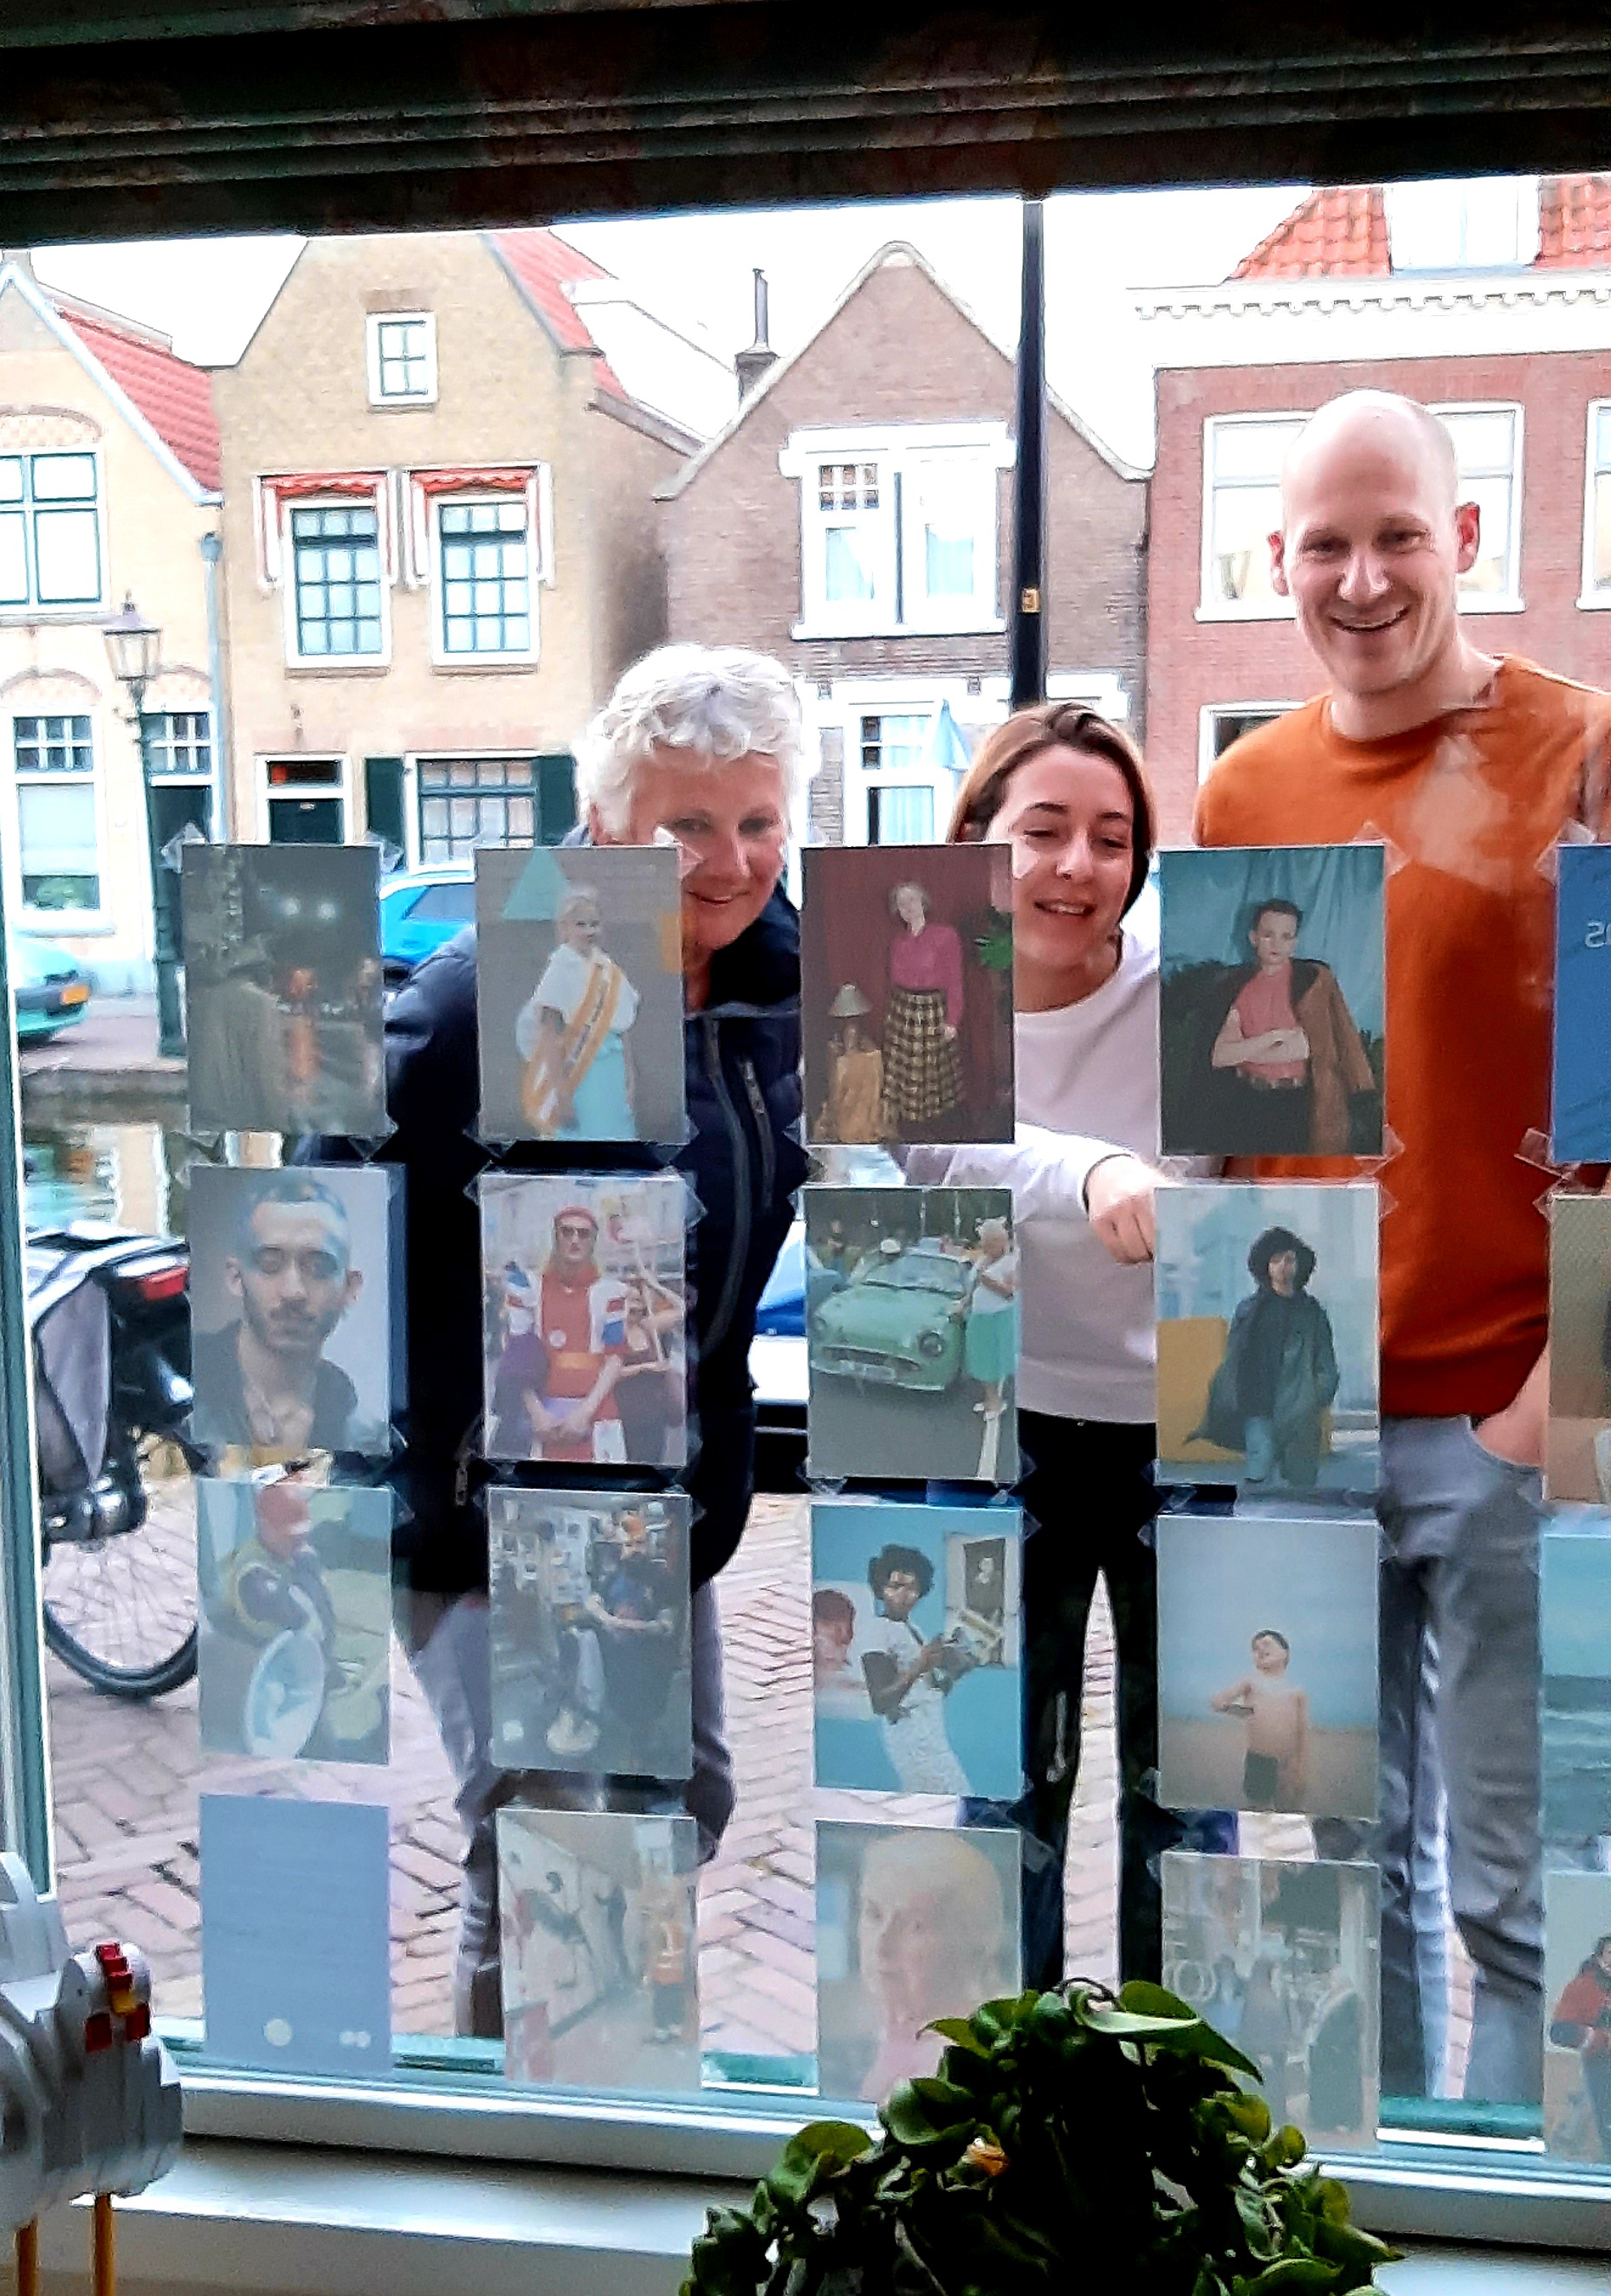 Photograph looking out of a window displaying postcard-sized photographs, with three people looking at the images and smiling, with buildings behind them in the background.